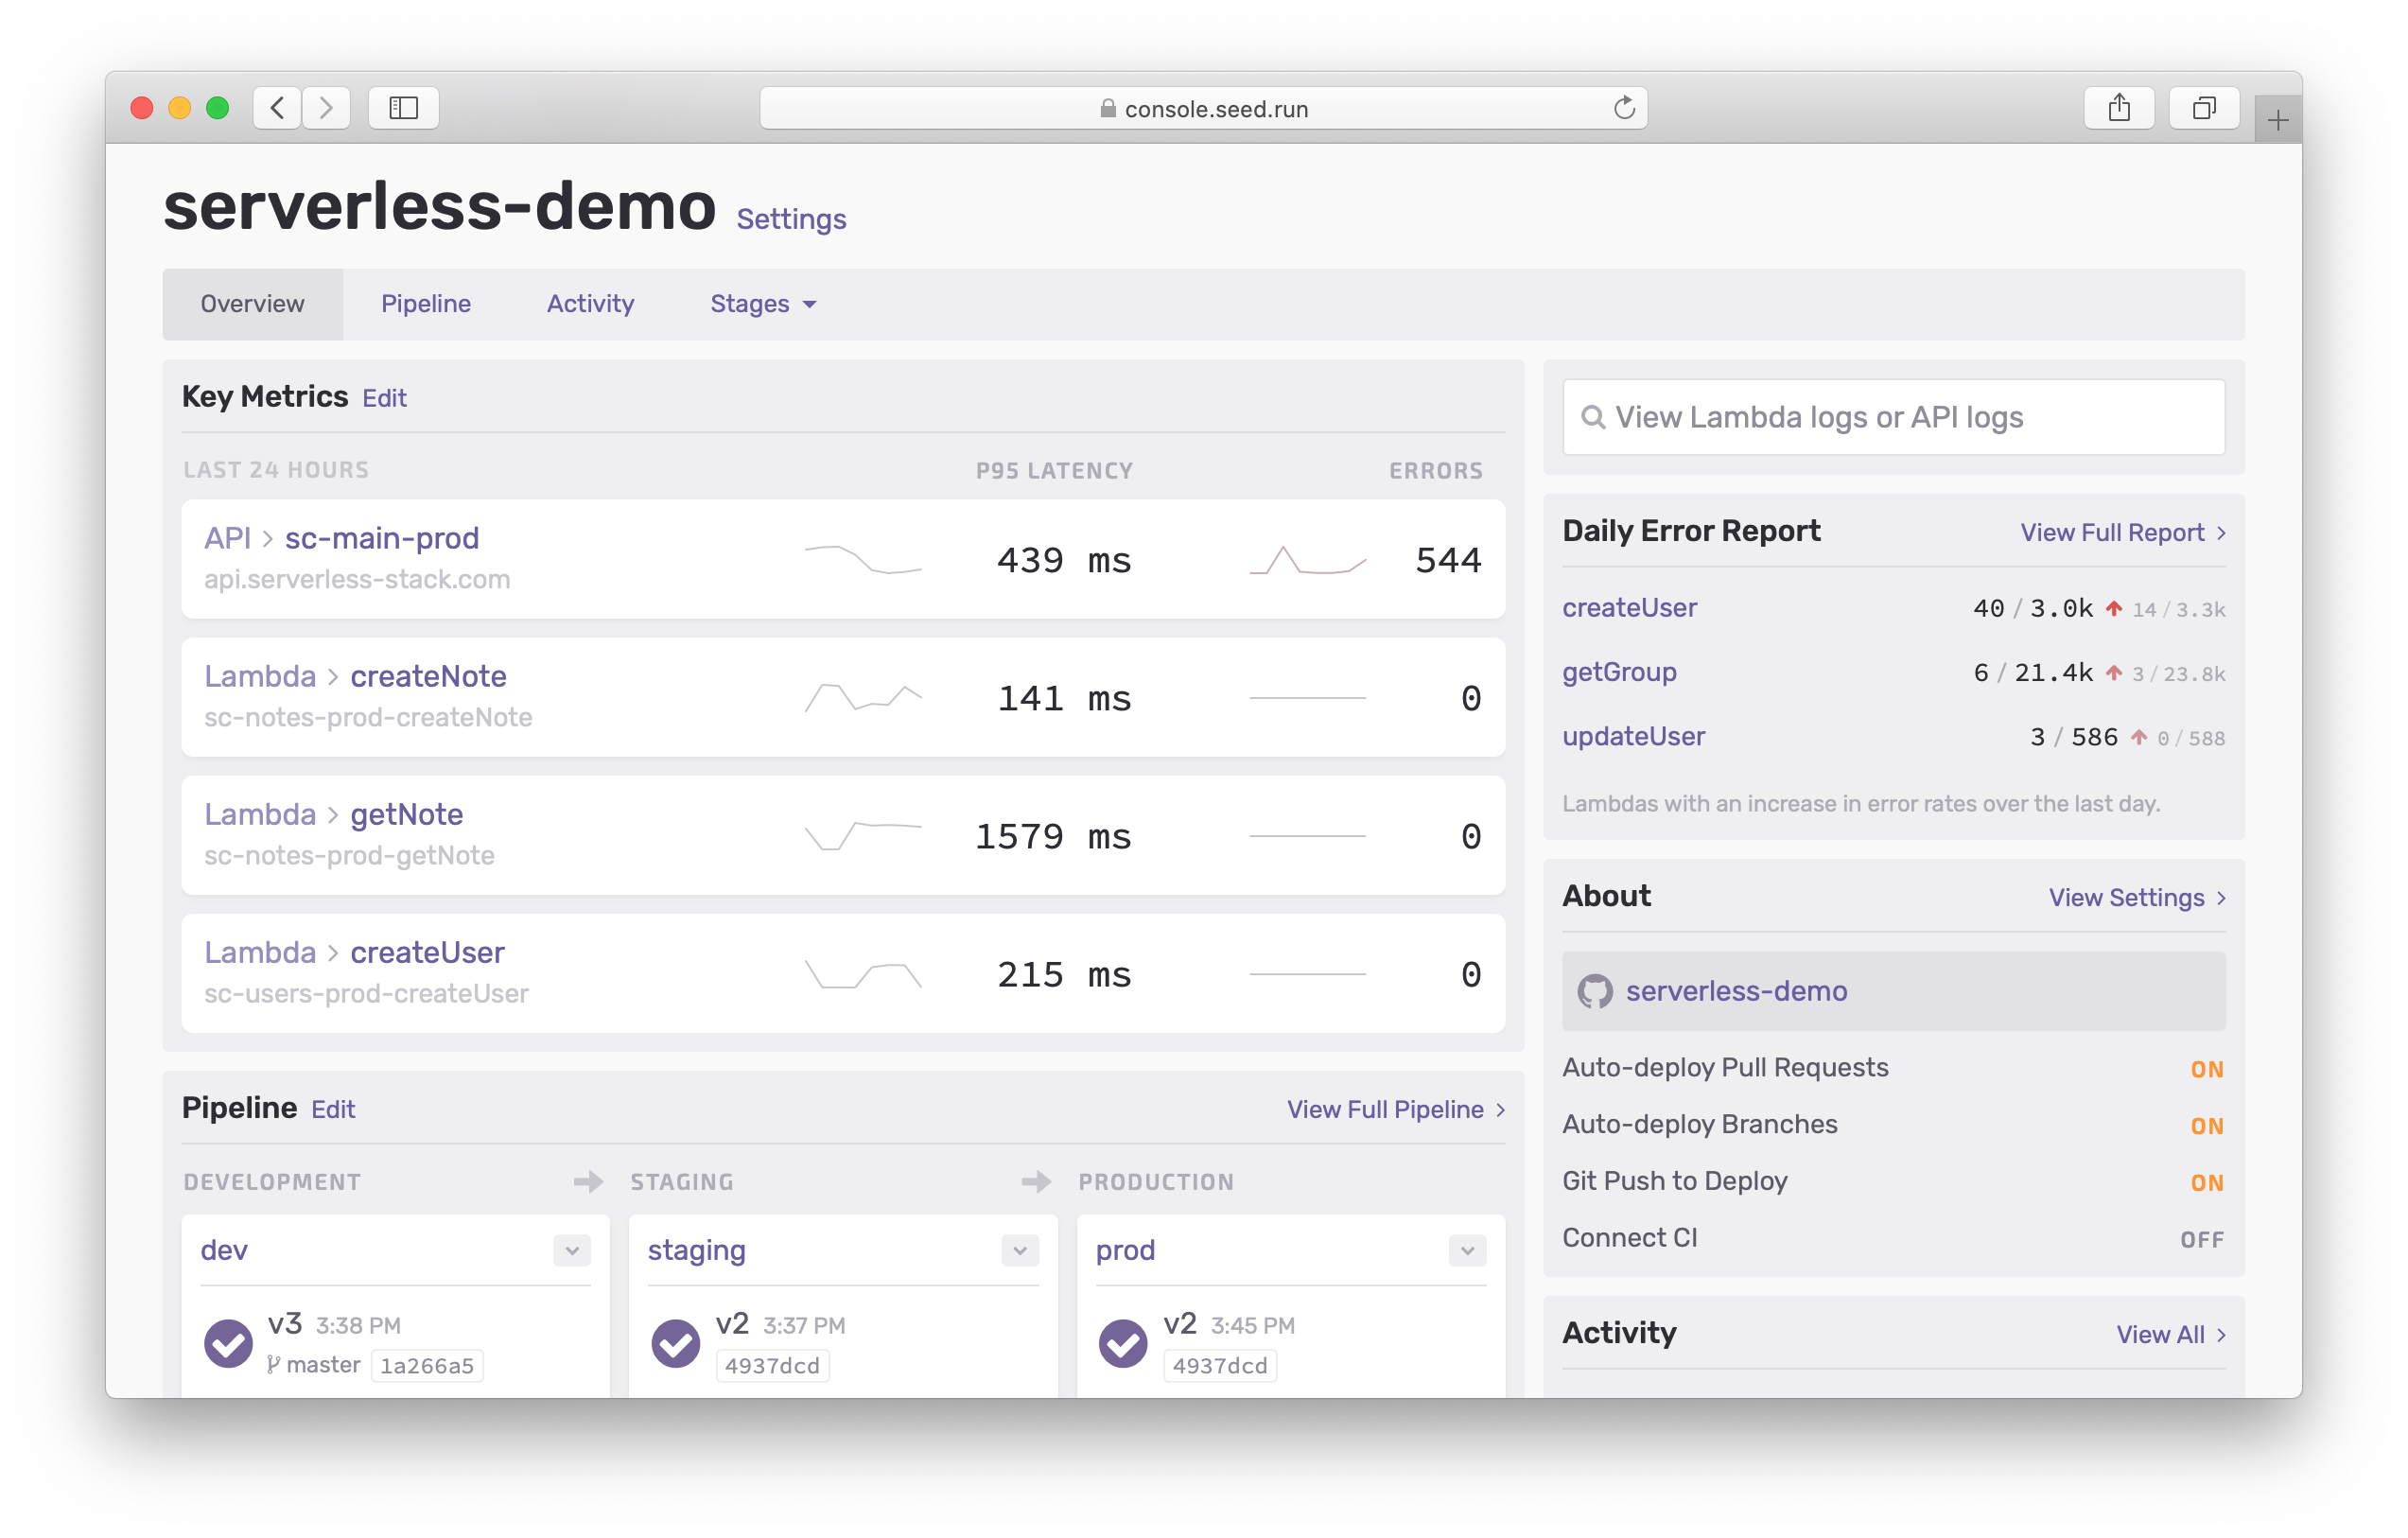 New Seed dashboard